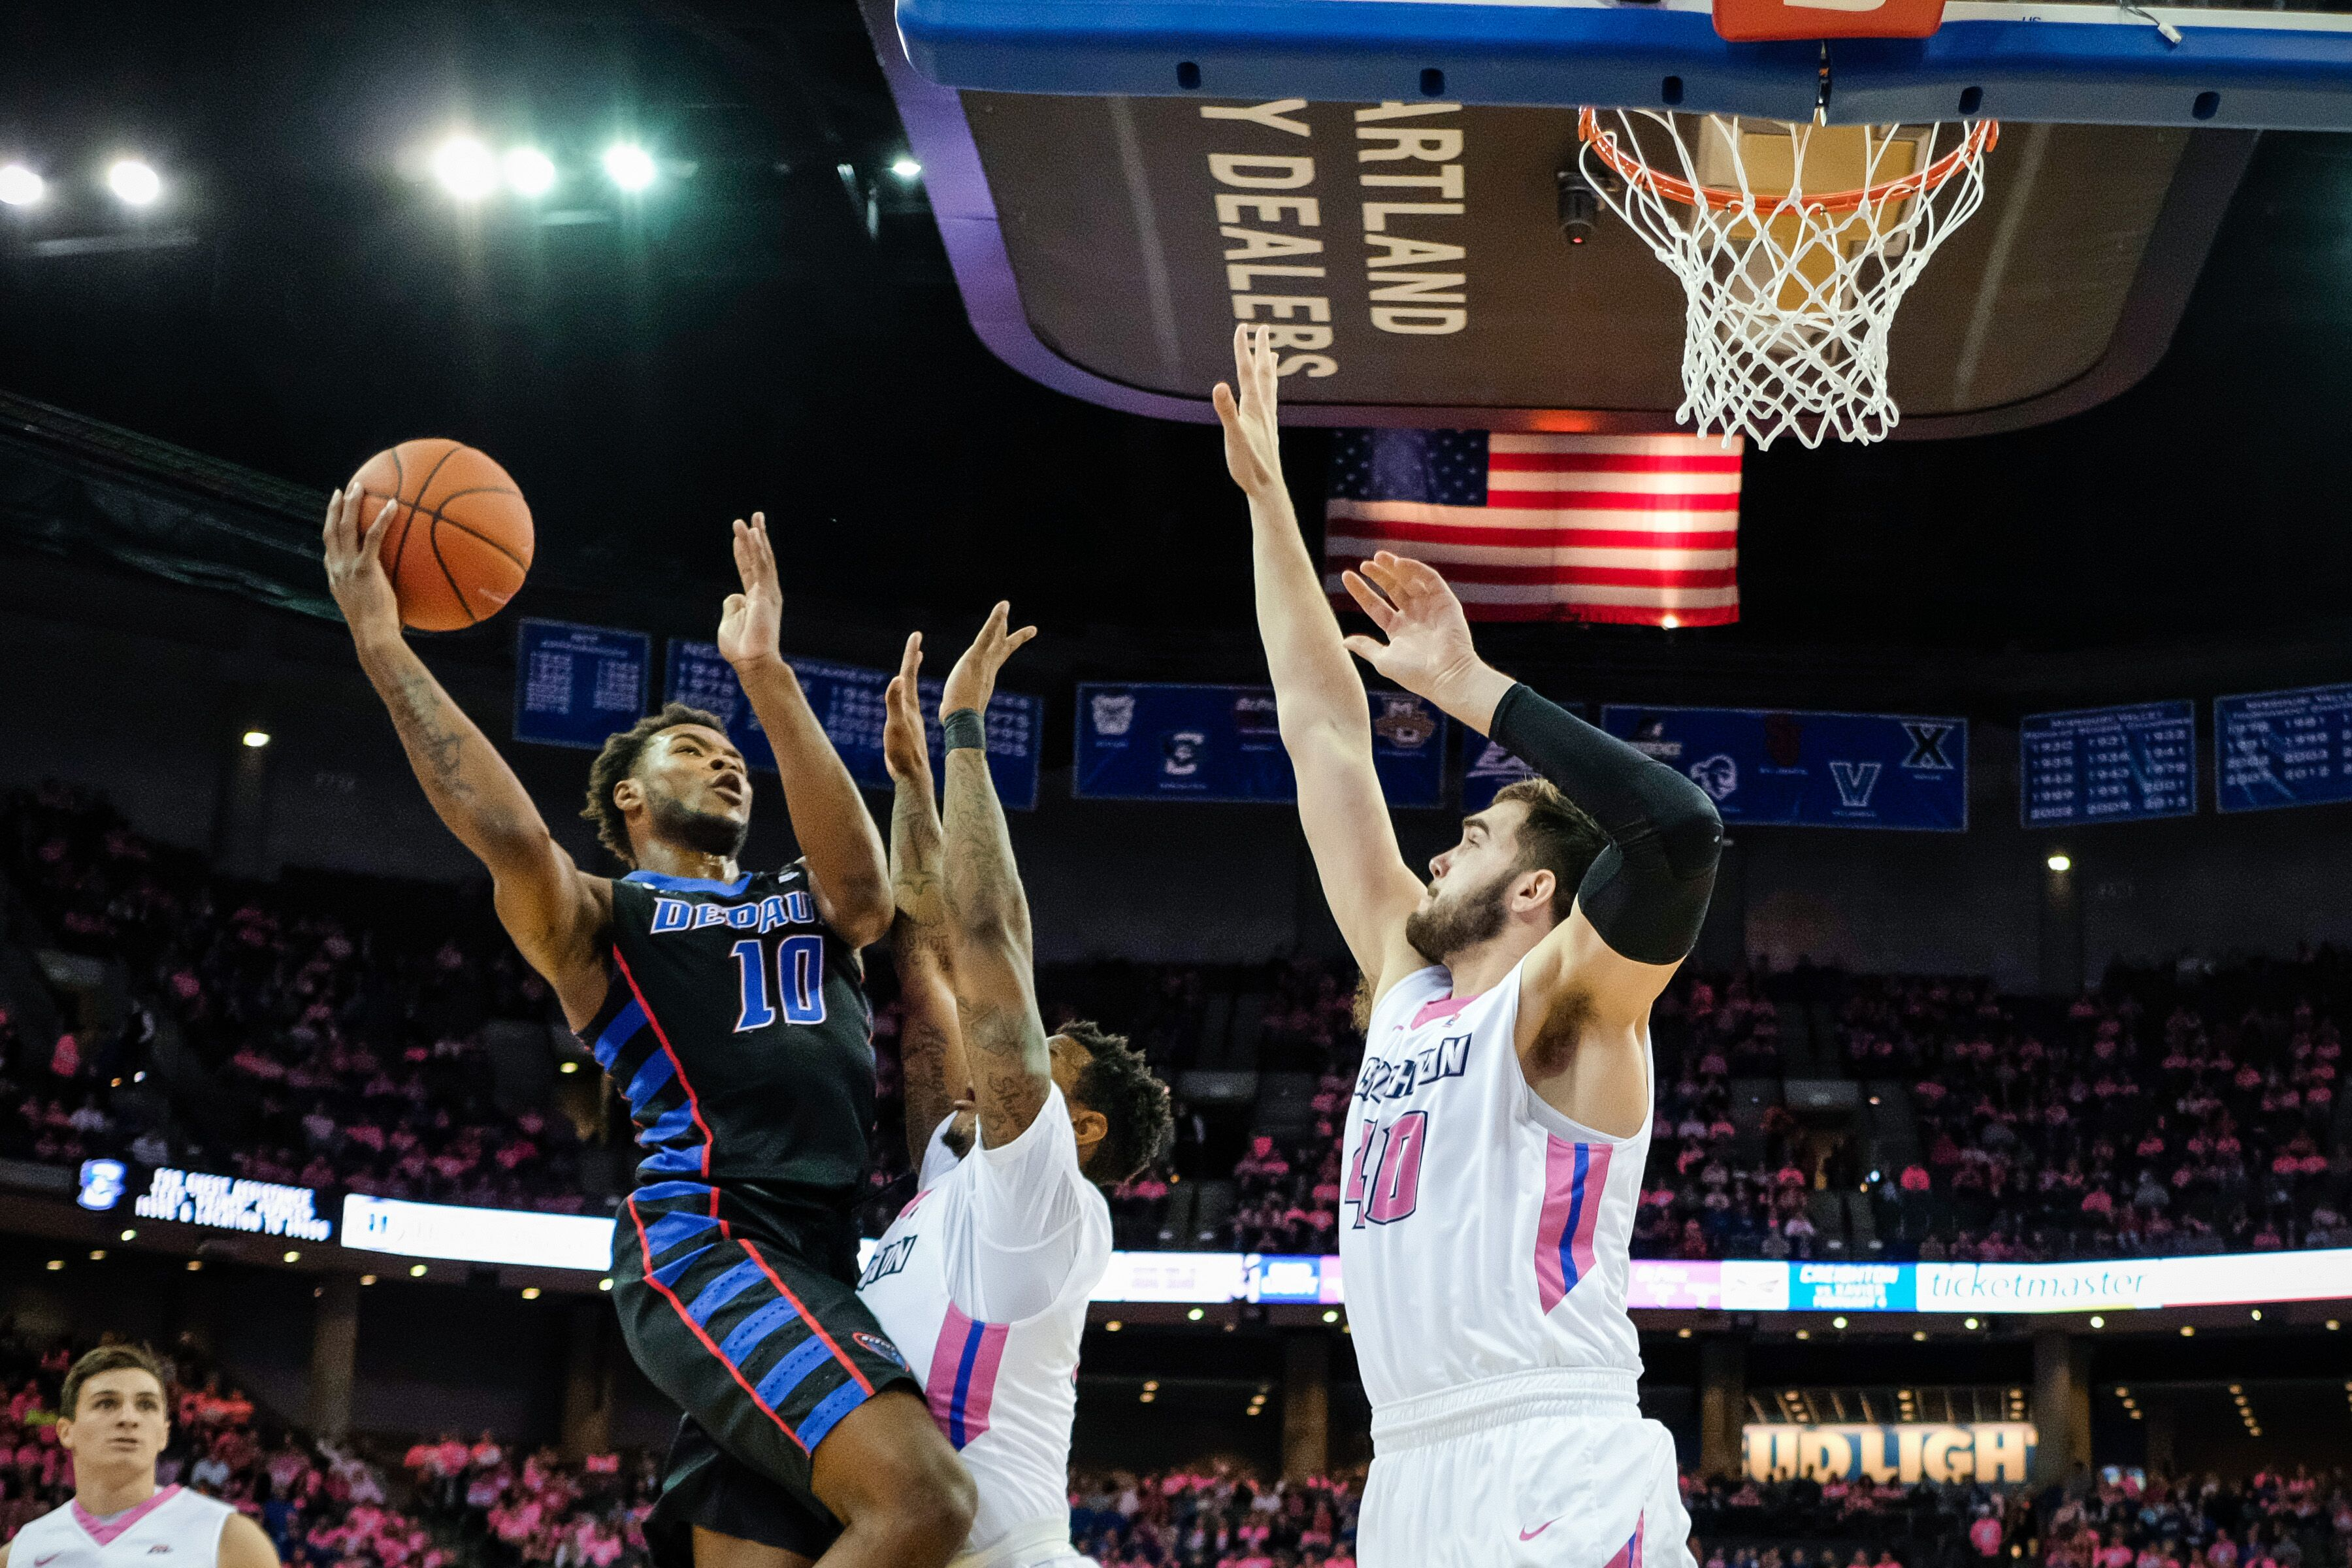 depaul basketball - photo #36